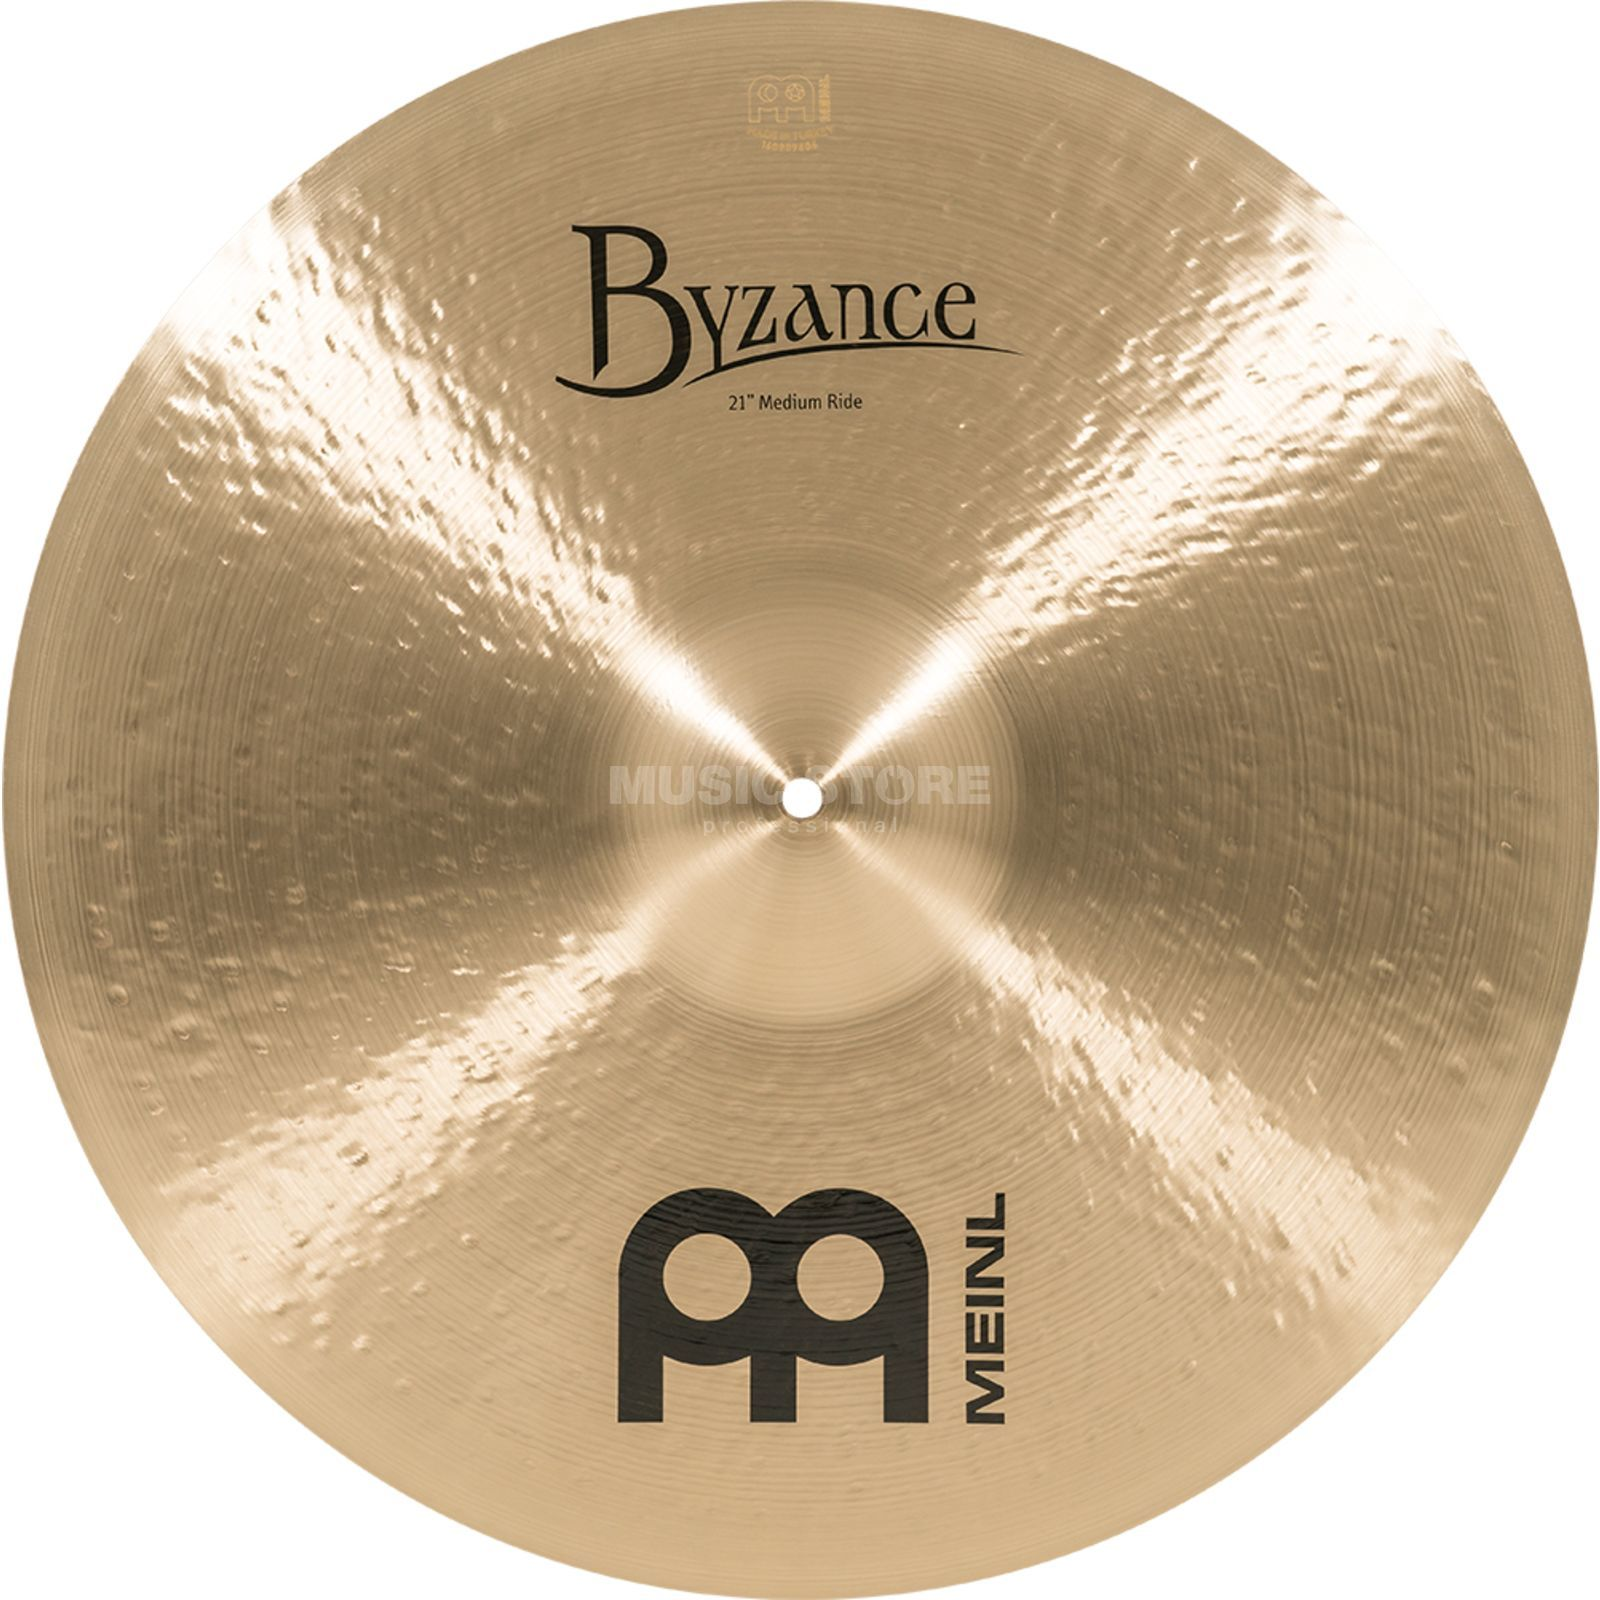 "Meinl Byzance Medium Ride 21"", B21MR, Traditional Finish Imagen del producto"